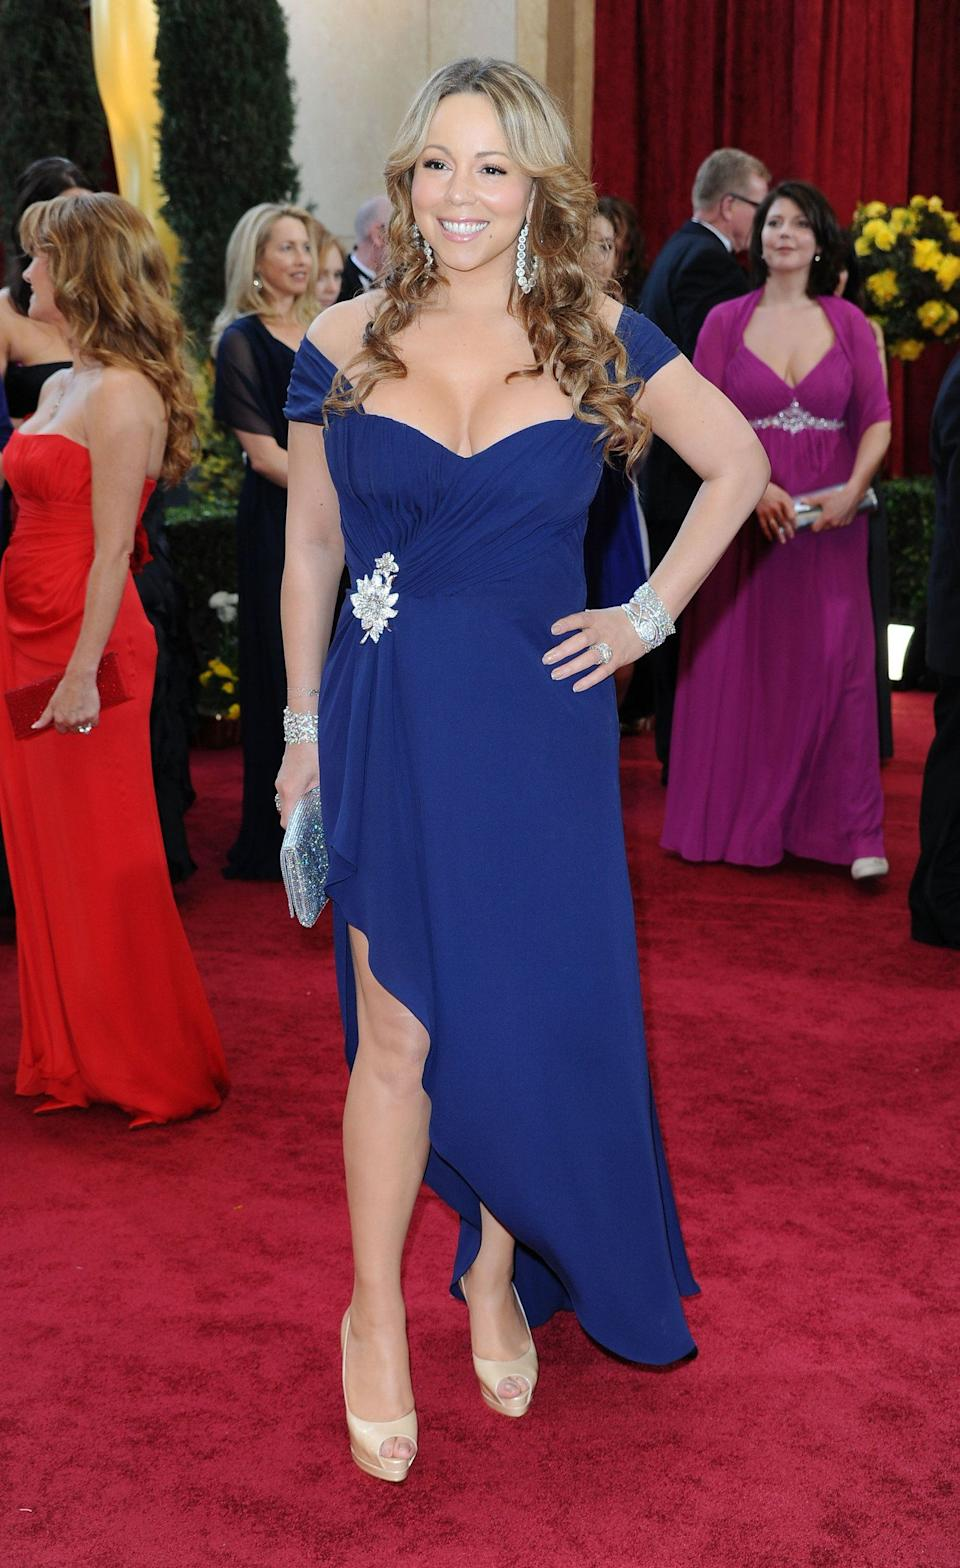 Mariah looking like her usual (fabulous) self. (Photo: Getty Editorial)